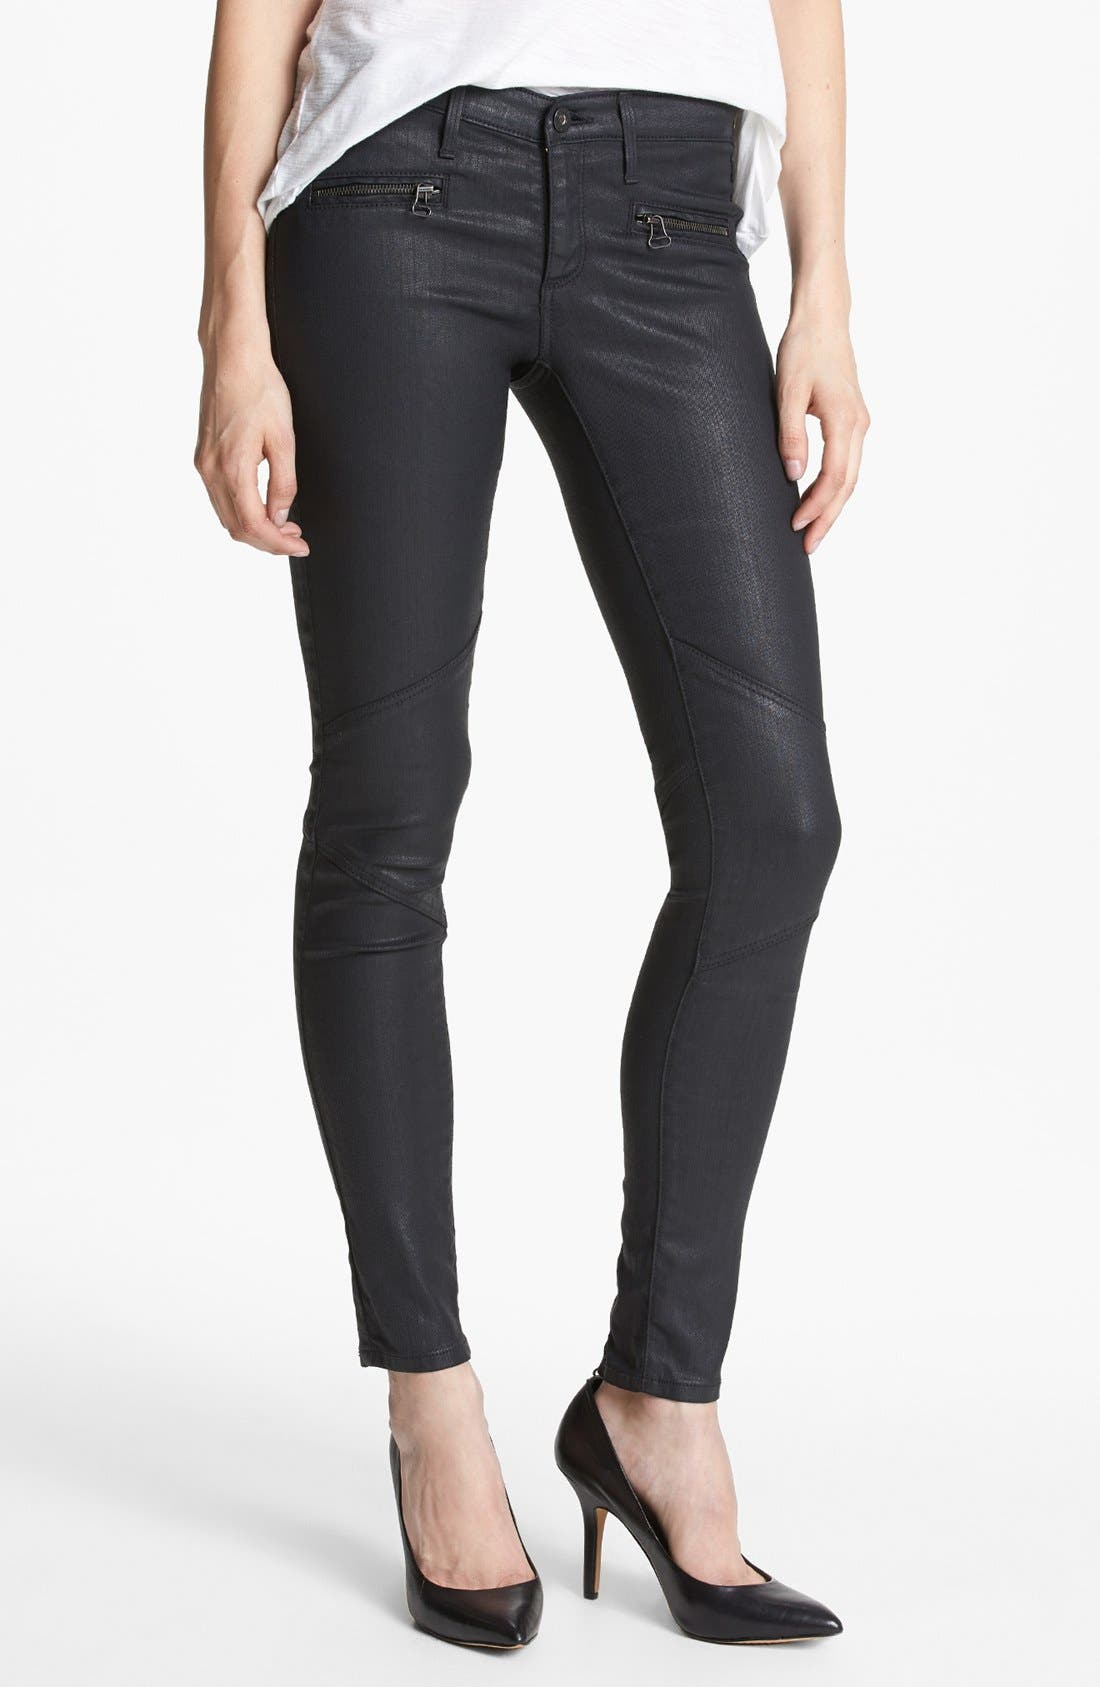 Main Image - AG 'The Motto' Coated Ankle Leggings (BSC)